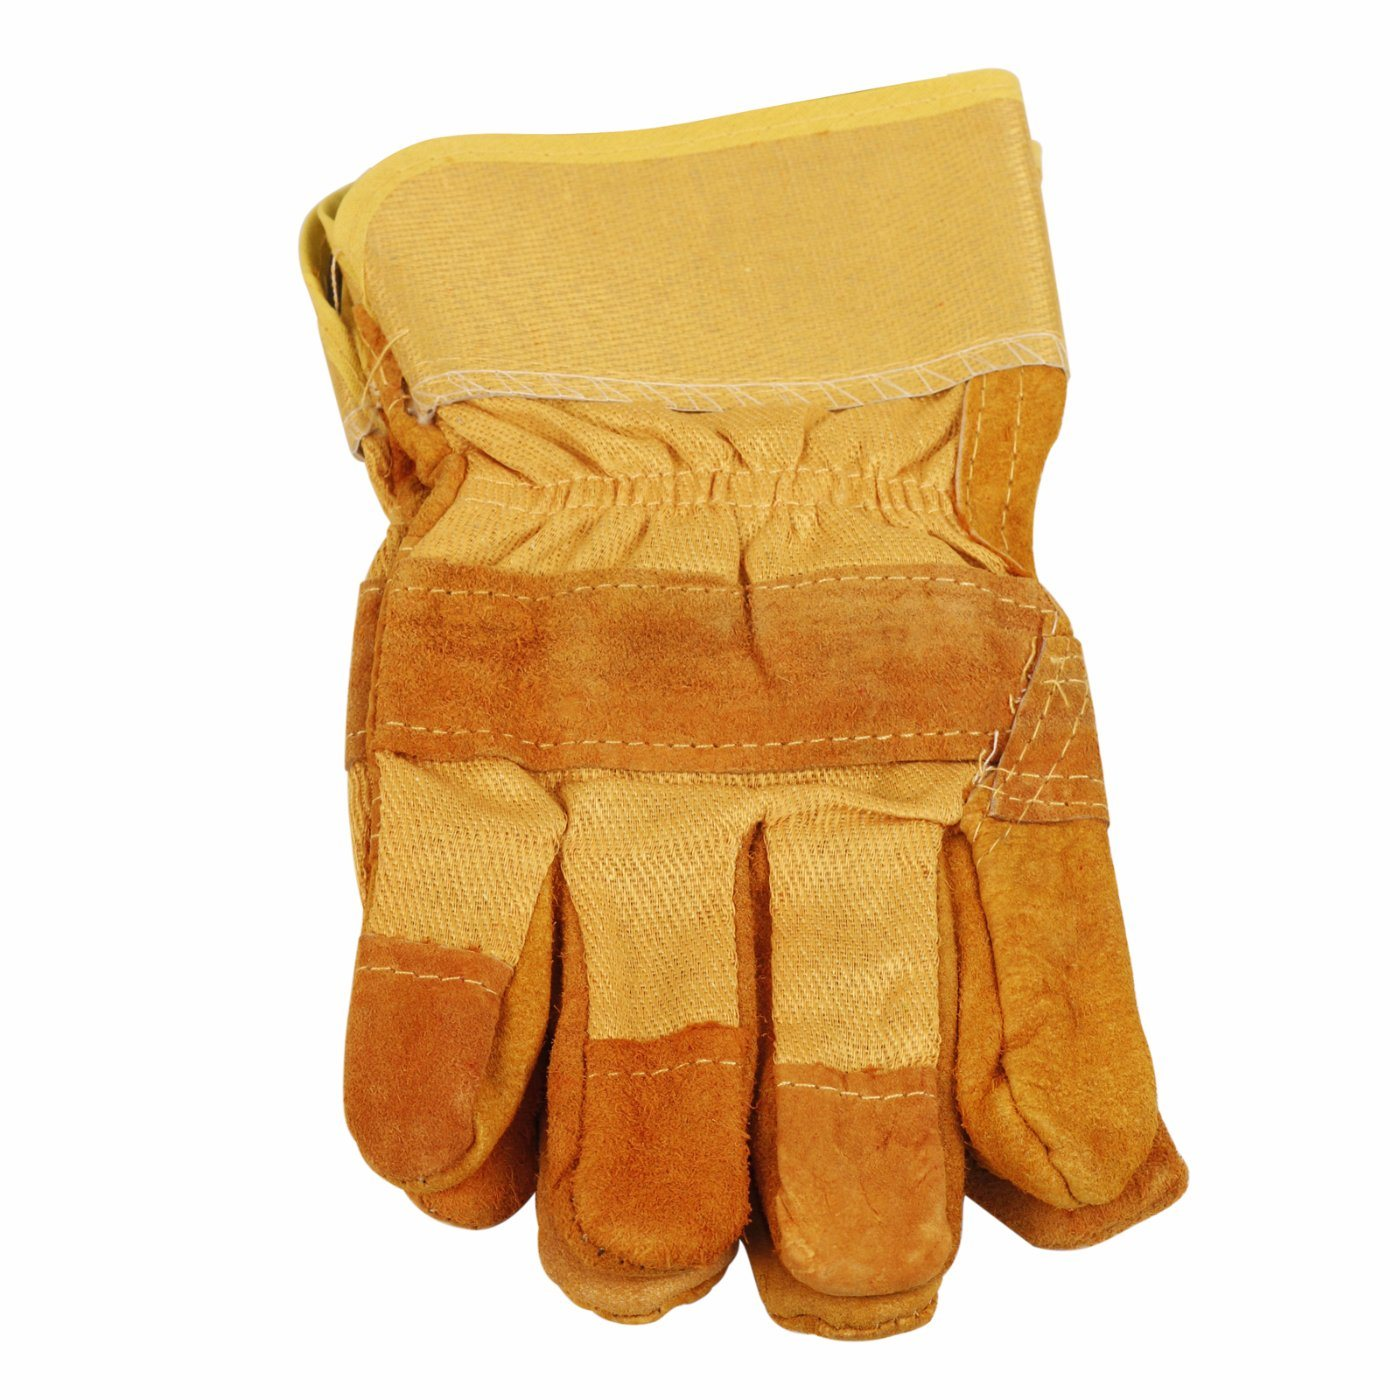 Mechanic Work/Working Gloves Finger Palm Protection Industrial Labor